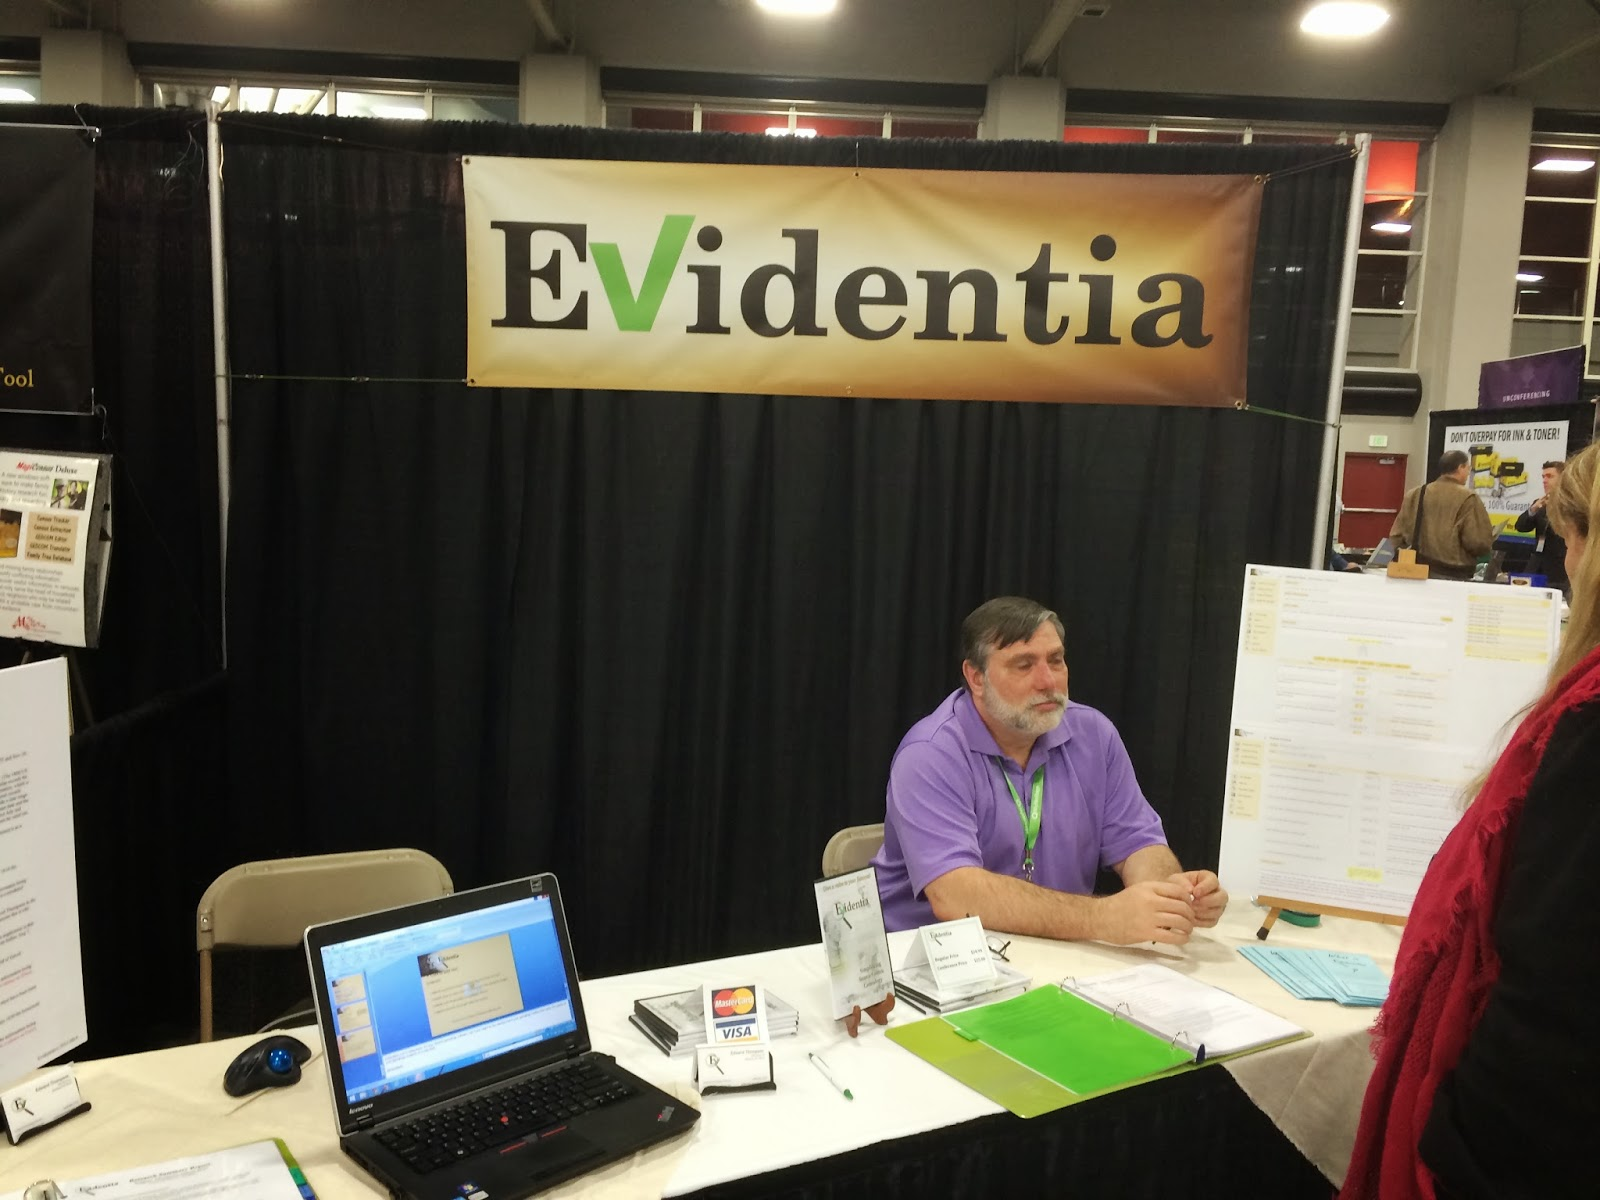 Evidentia Display and Ed Thompson at Expo Hall